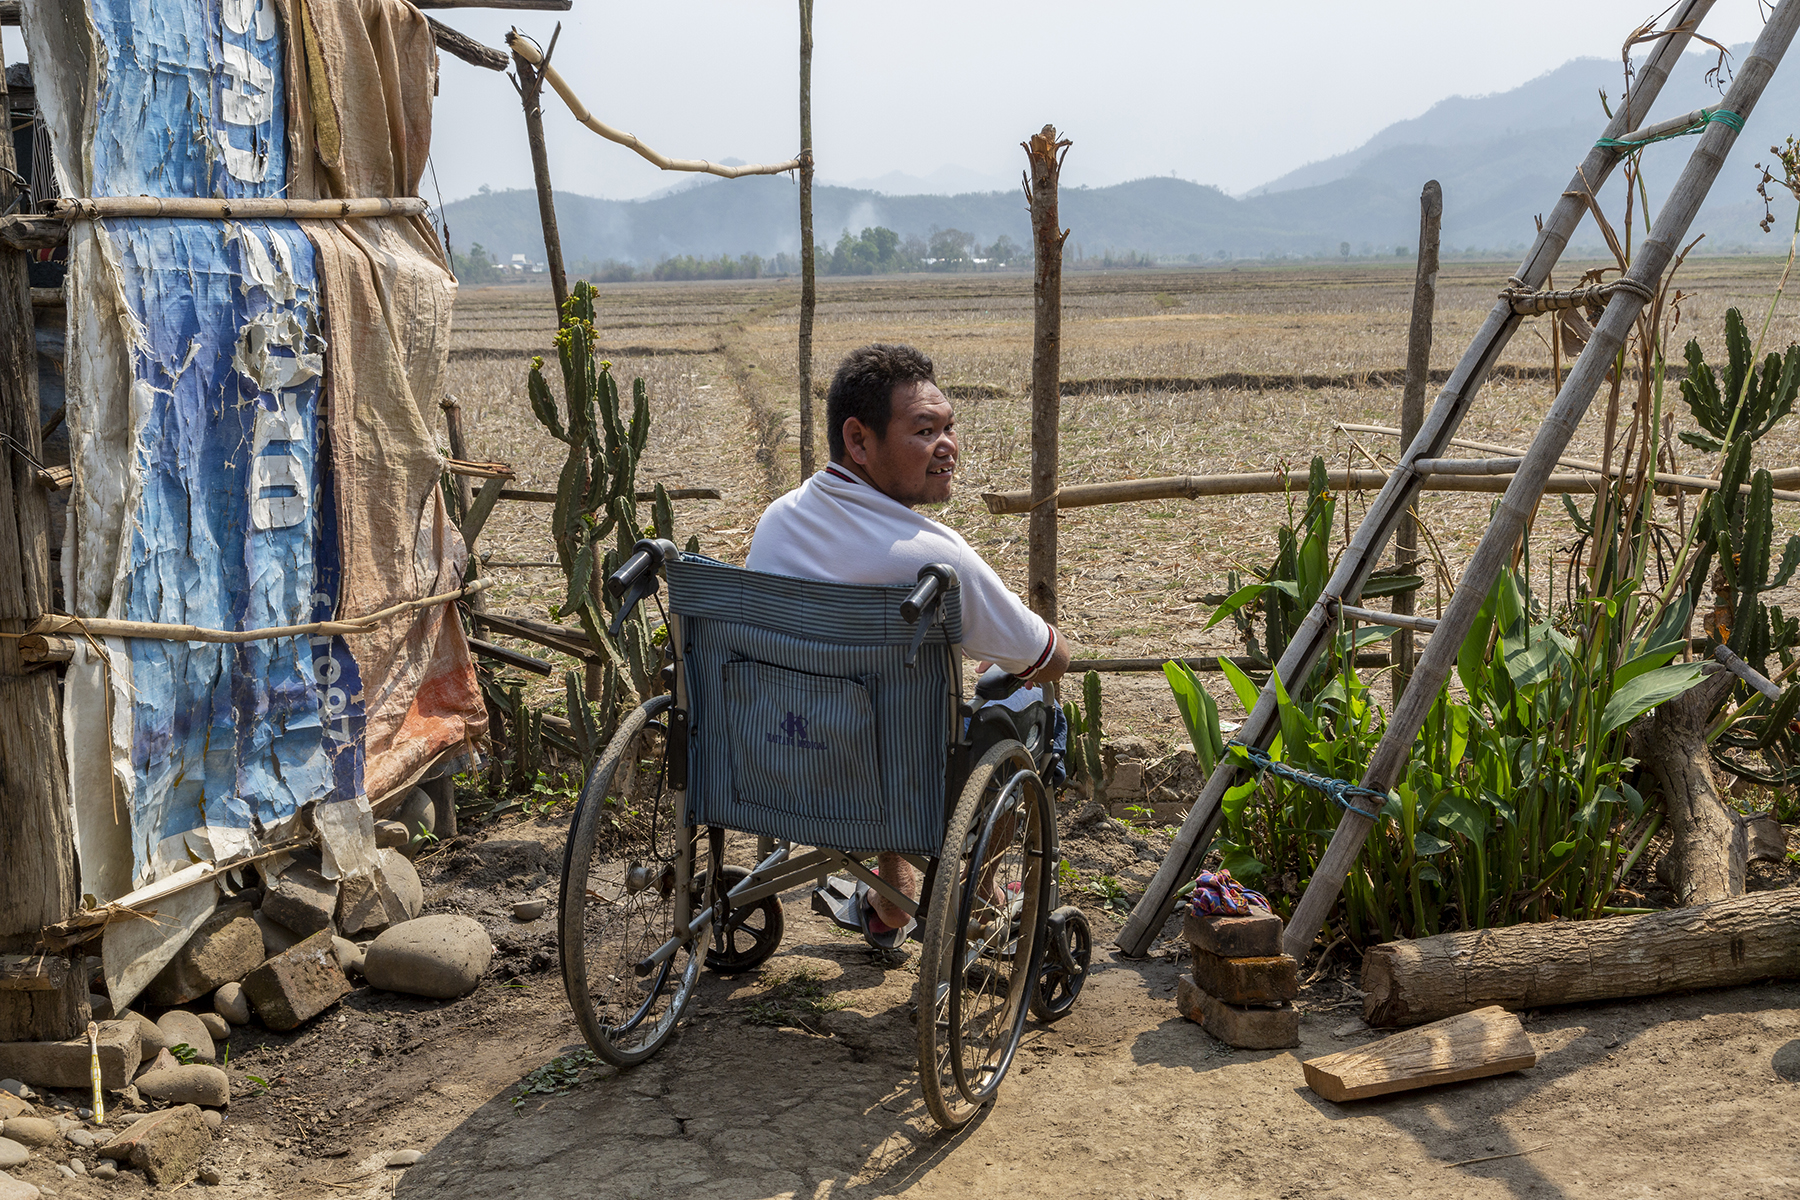 Sohkho sits in his wheelchair next to a fence made of upright branches and bamboo struts. The wheelchair, with its back to us, faces a landscape of harvested fields with brown stubble, and distant, misty blue hills. He wears a white T-shirt and has turned his body sideways so that he shows his profile. To the right of the wheelchair beneath an inclined bamboo ladder are a few canna and cactus plants.